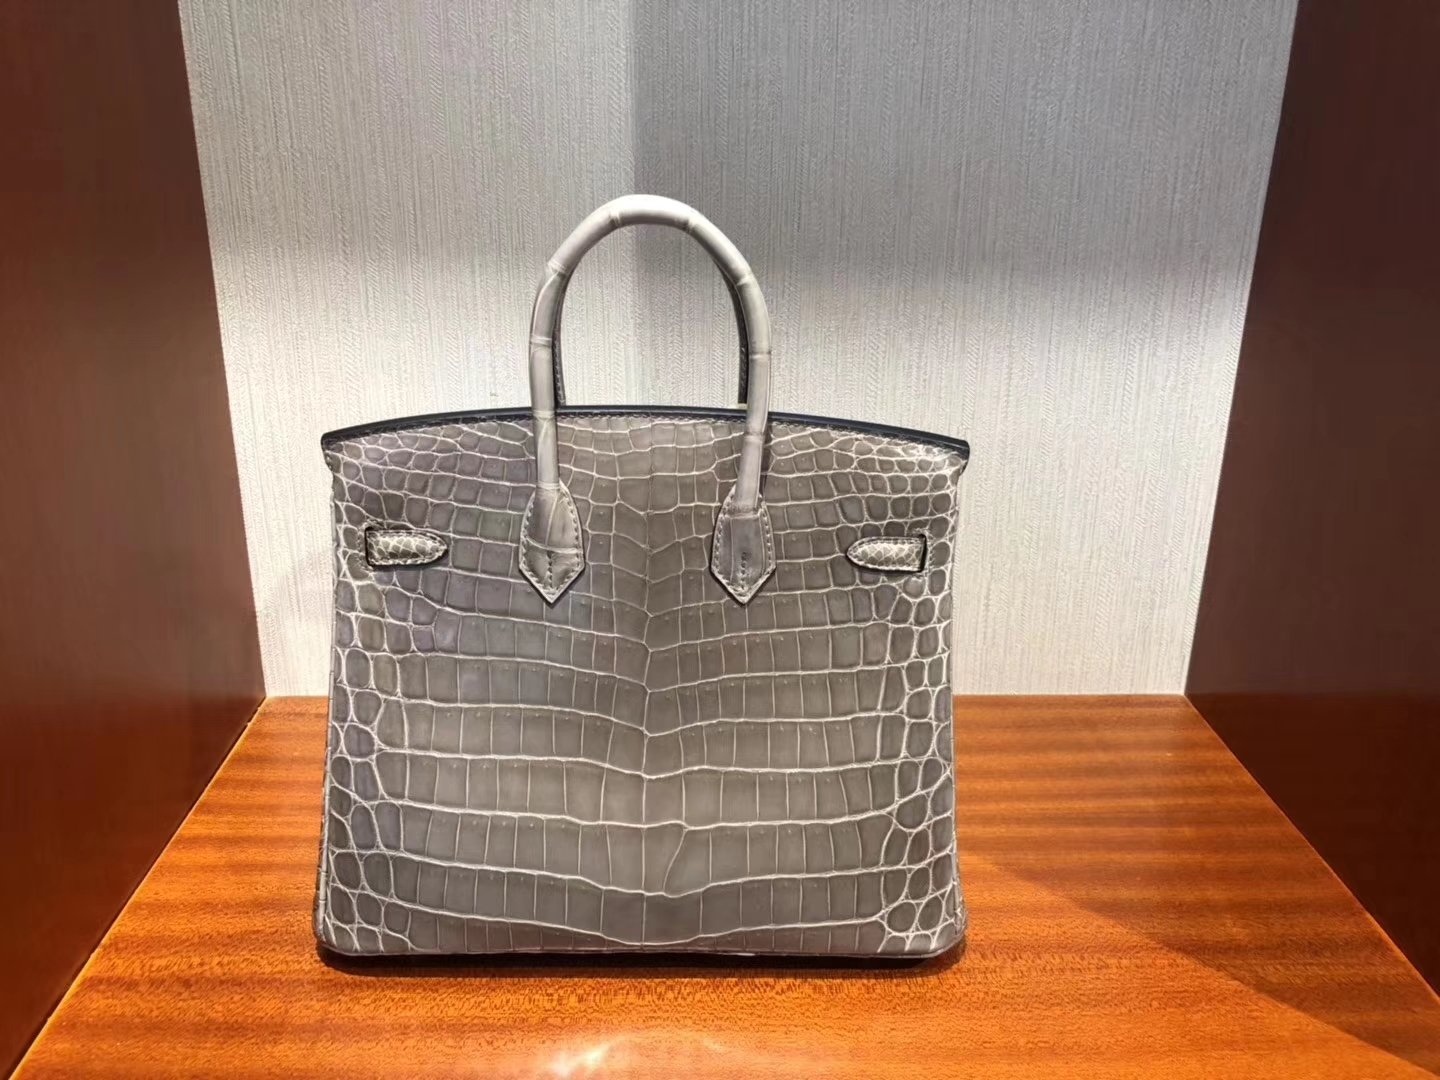 Sale Hermes CK18 Gris Etoupe Shiny Crocodile Birkin Bag25CM Gold Hardware